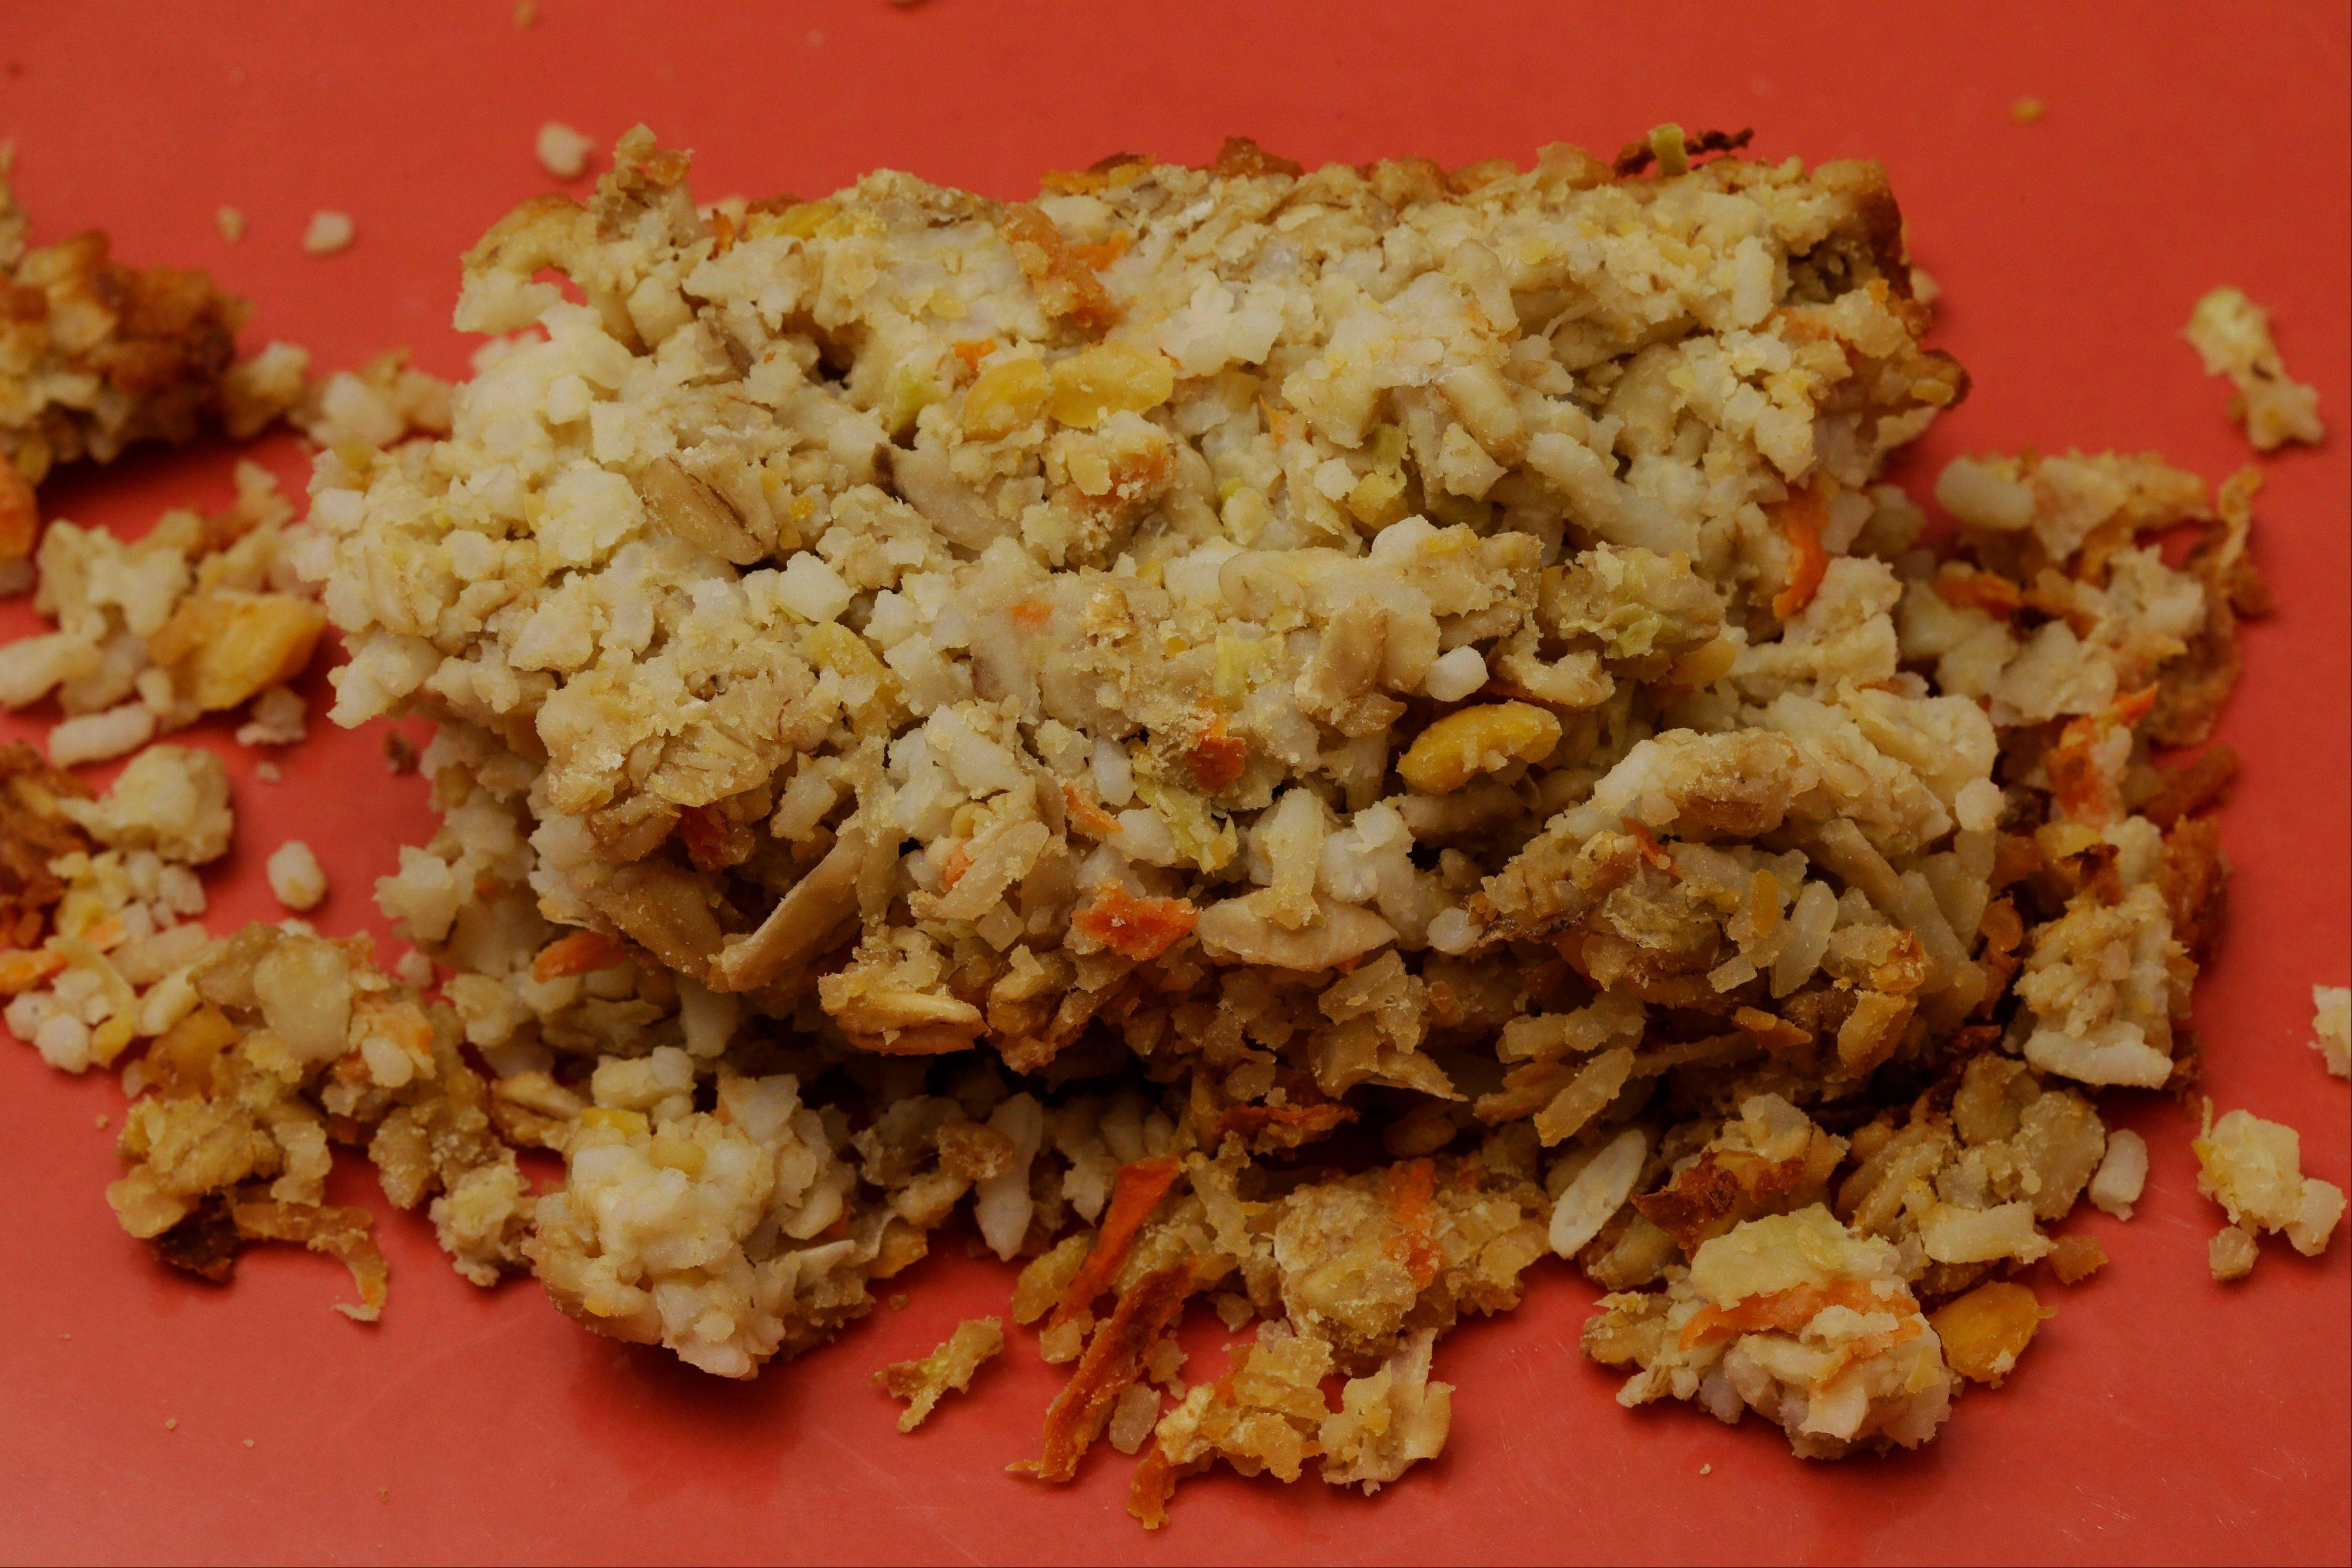 A plate of Nutraloaf, presently served in Pennsylvania prisons as a �behavior modified meal,� at Eastern State Penitentiary in Philadelphia. The historic penitentiary plans to serve visitors sample meals from the 1800s, 1900s and today this weekend.